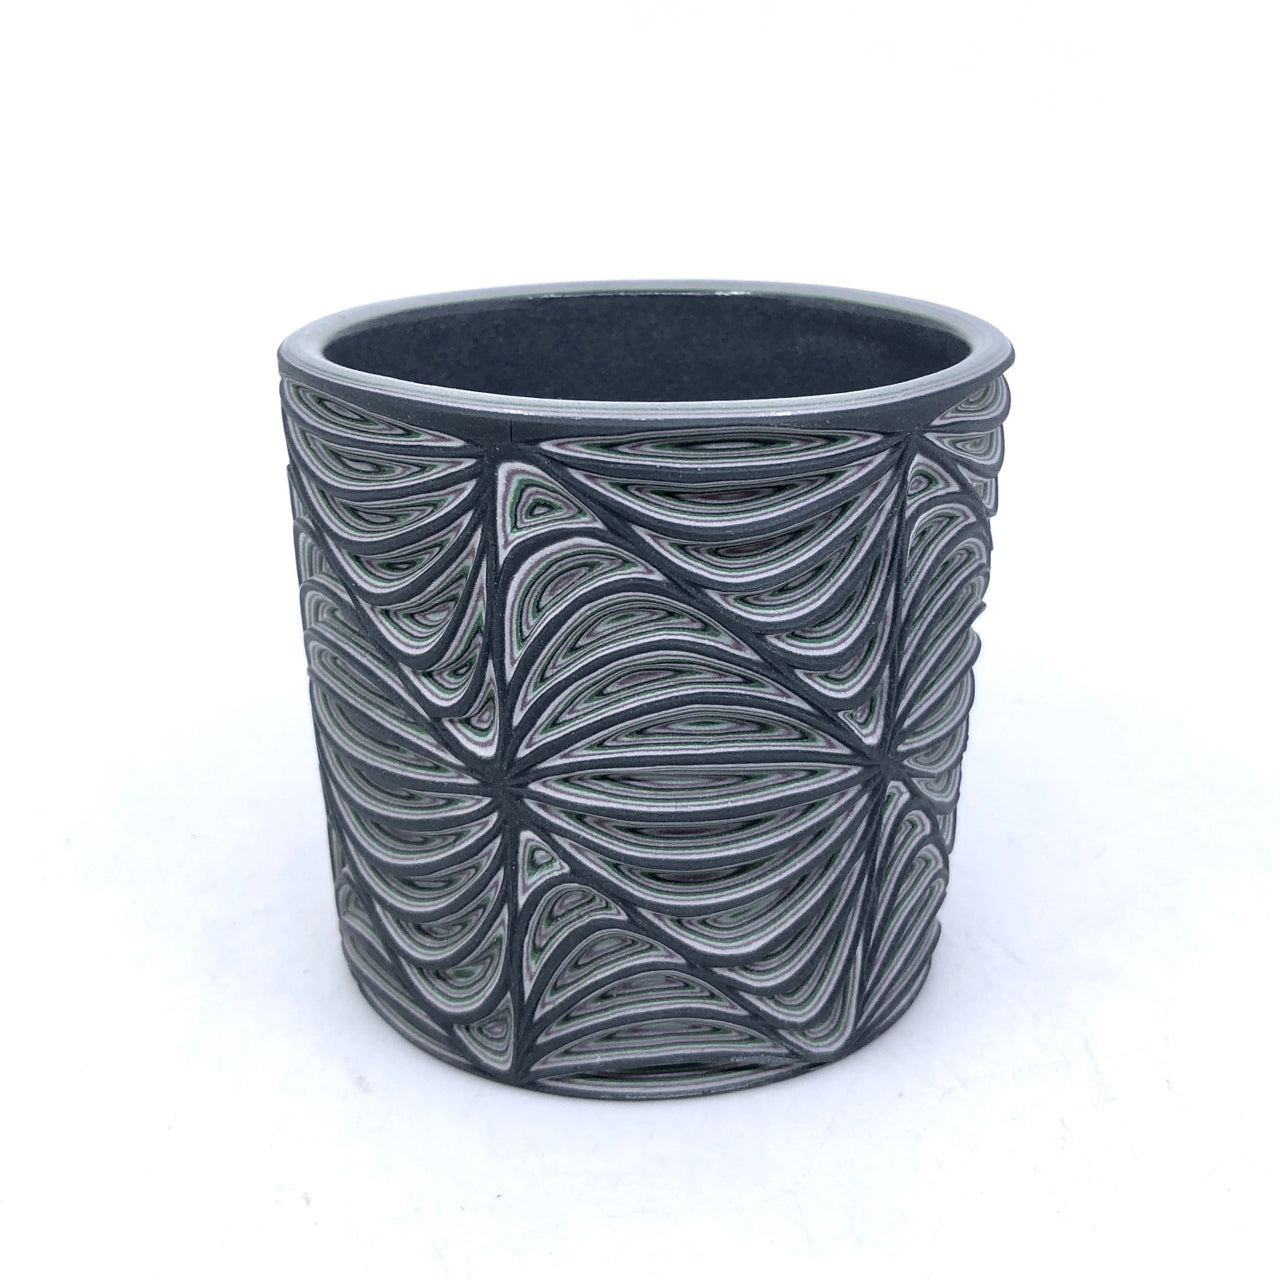 *Preorder* 5 layer Black Malachite Soundwaves Carved Tumbler